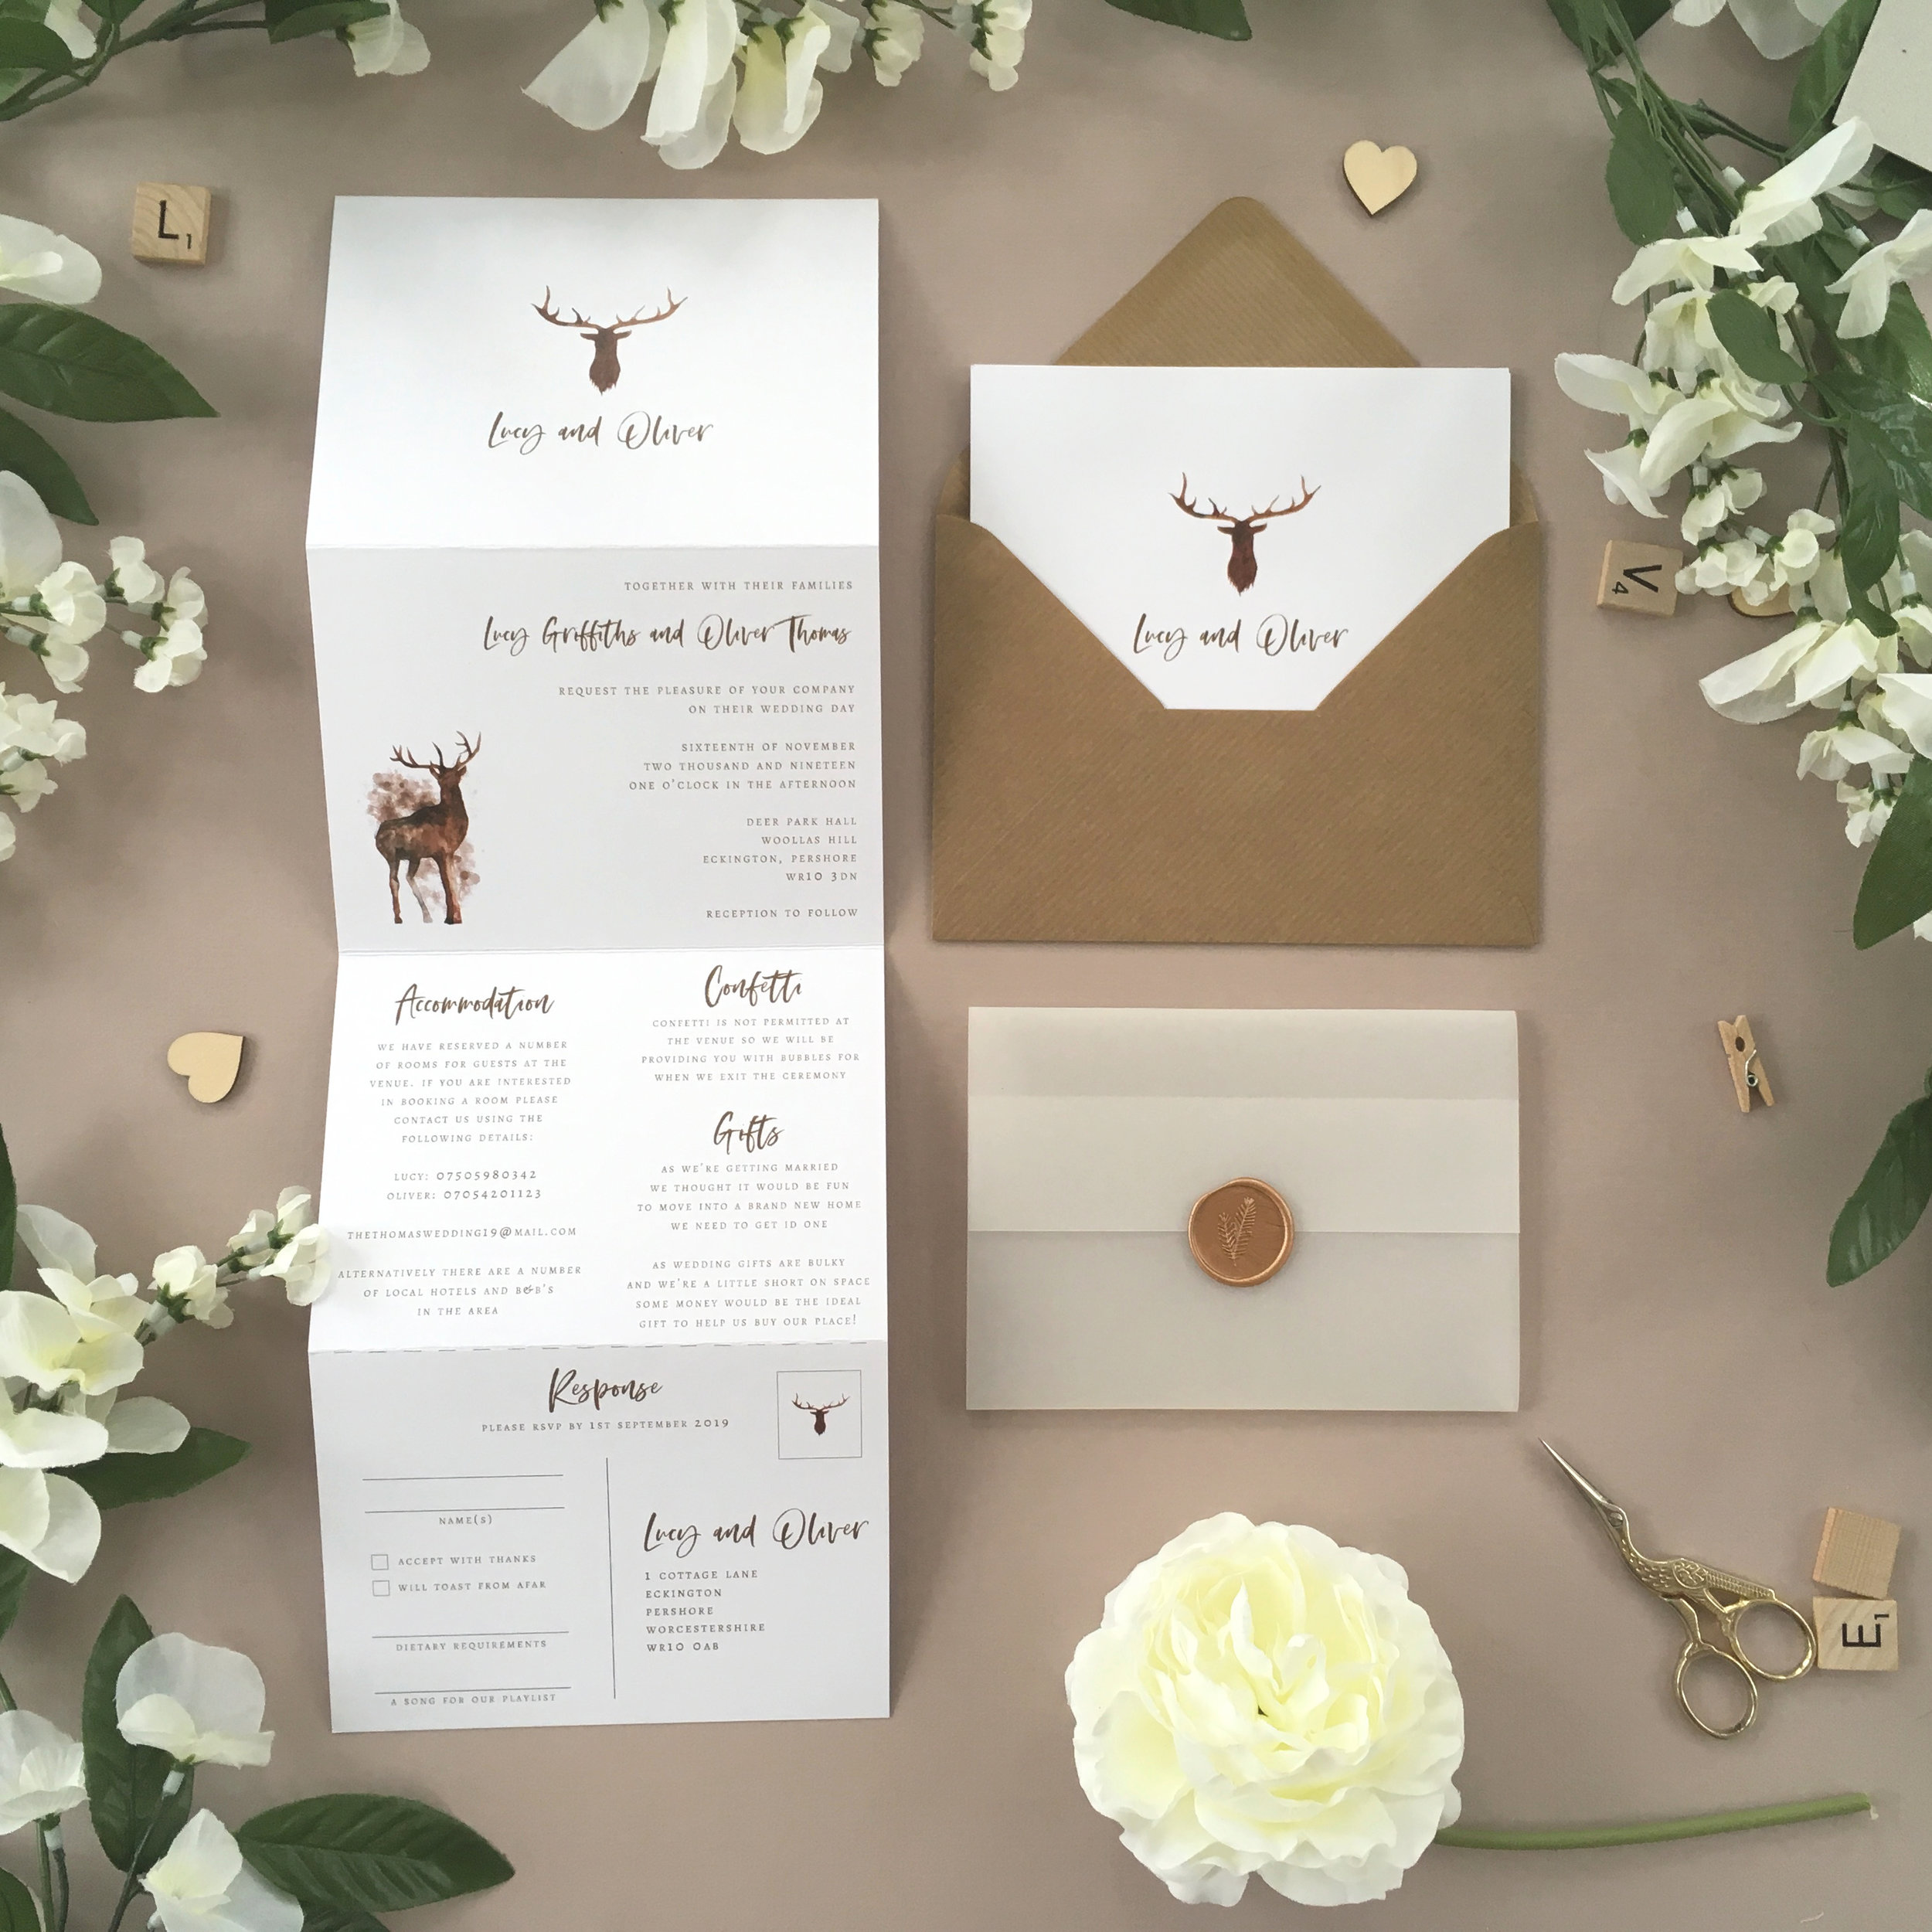 Highgate - Ideal for a rustic, vintage or outdoor wedding, our Highgate collection uses iconic watercolour deer imagery for a lovely outdoor-inspired design.Our concertina invitations are a great all-in-one solution, with a detachable RSVP at the bottom of the invitation - all guests need to do is fill in their details, put a stamp in the corner and post!Concertina invitations can be provided on an as-is basis, or can be provided bound with a vellum jacket and timeless wax seal, or tied with ribbon or twine for a lovely hand-finished approach.- Concertina Invitation - from £1.95- Ribbon or Twine - £0.40- Vellum Jacket - £0.40- Wax Seal - £0.85 (Custom engraving also available)White envelope provided as standard with coloured upgrade available.